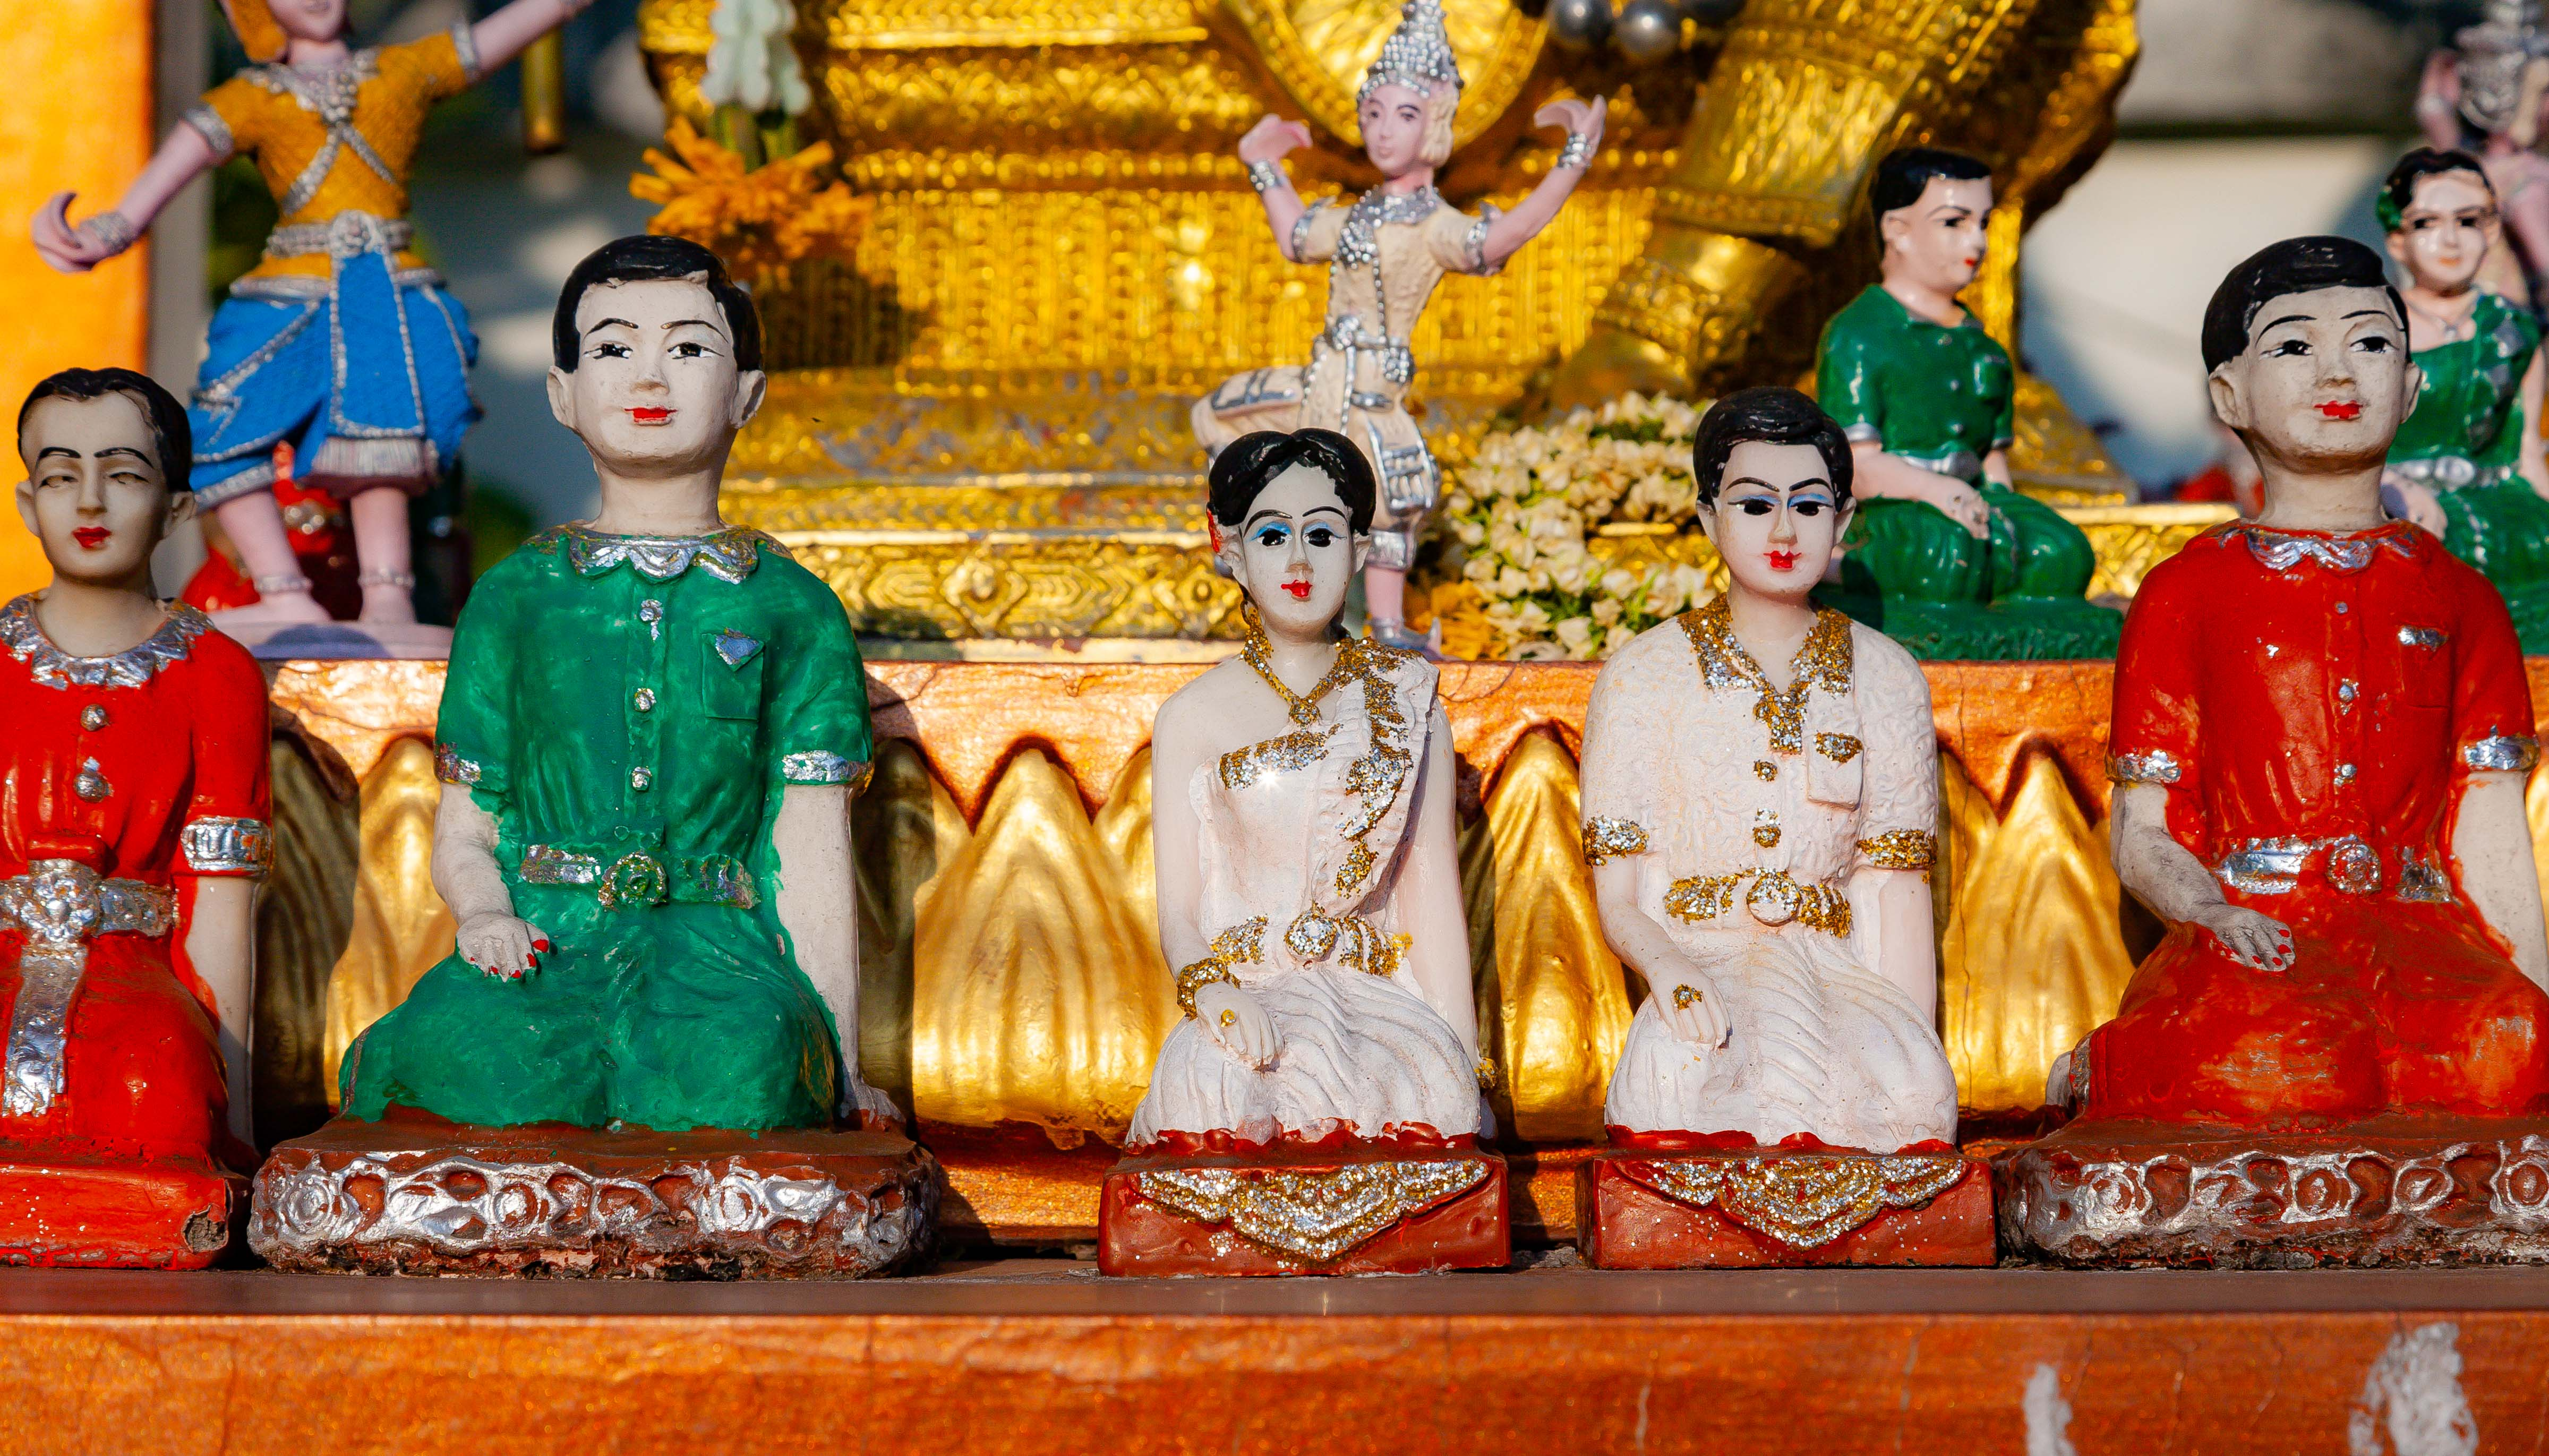 Thailand, Udon Thani Prov, Temple Figurines, 2008, IMG 6229